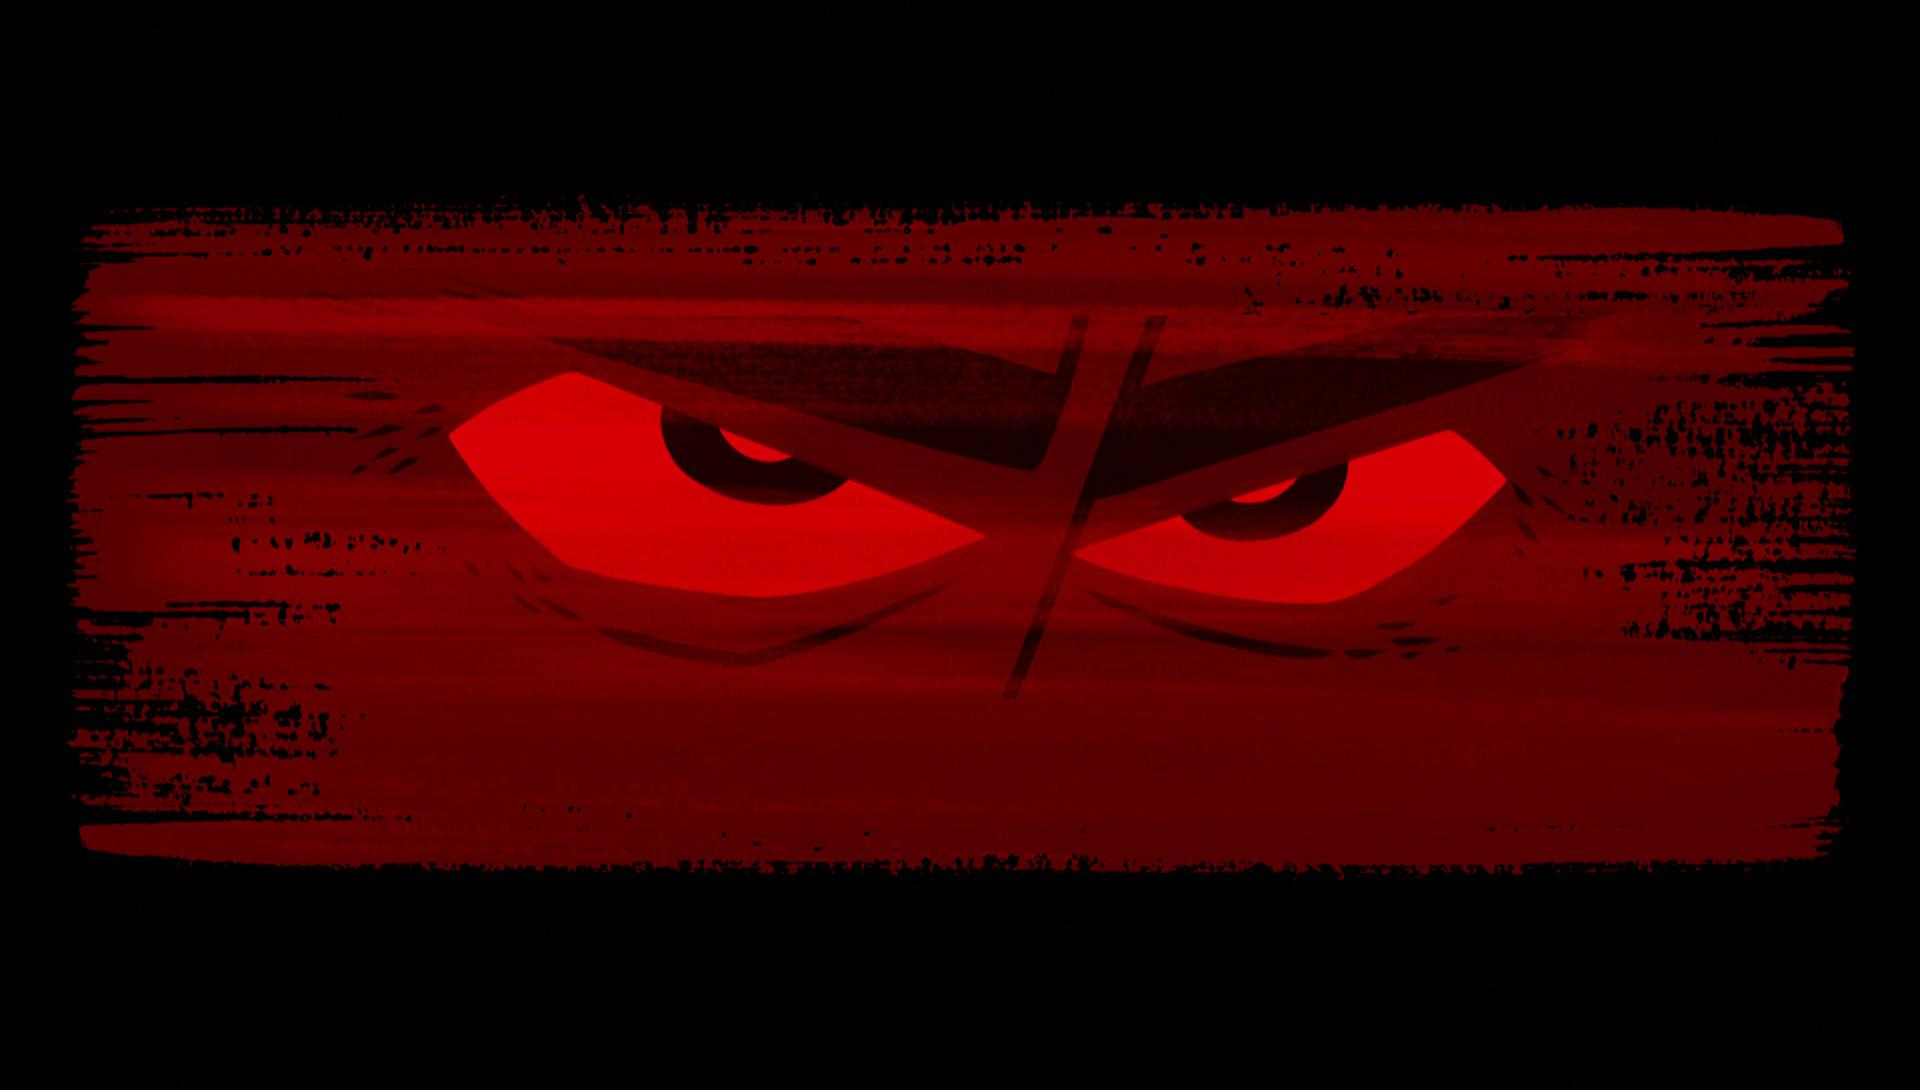 Samurai-Jack-HD-1920x1080-SE-Need-iPhone-S-Plus-Background-for-IPho-wallpaper-wp3809504